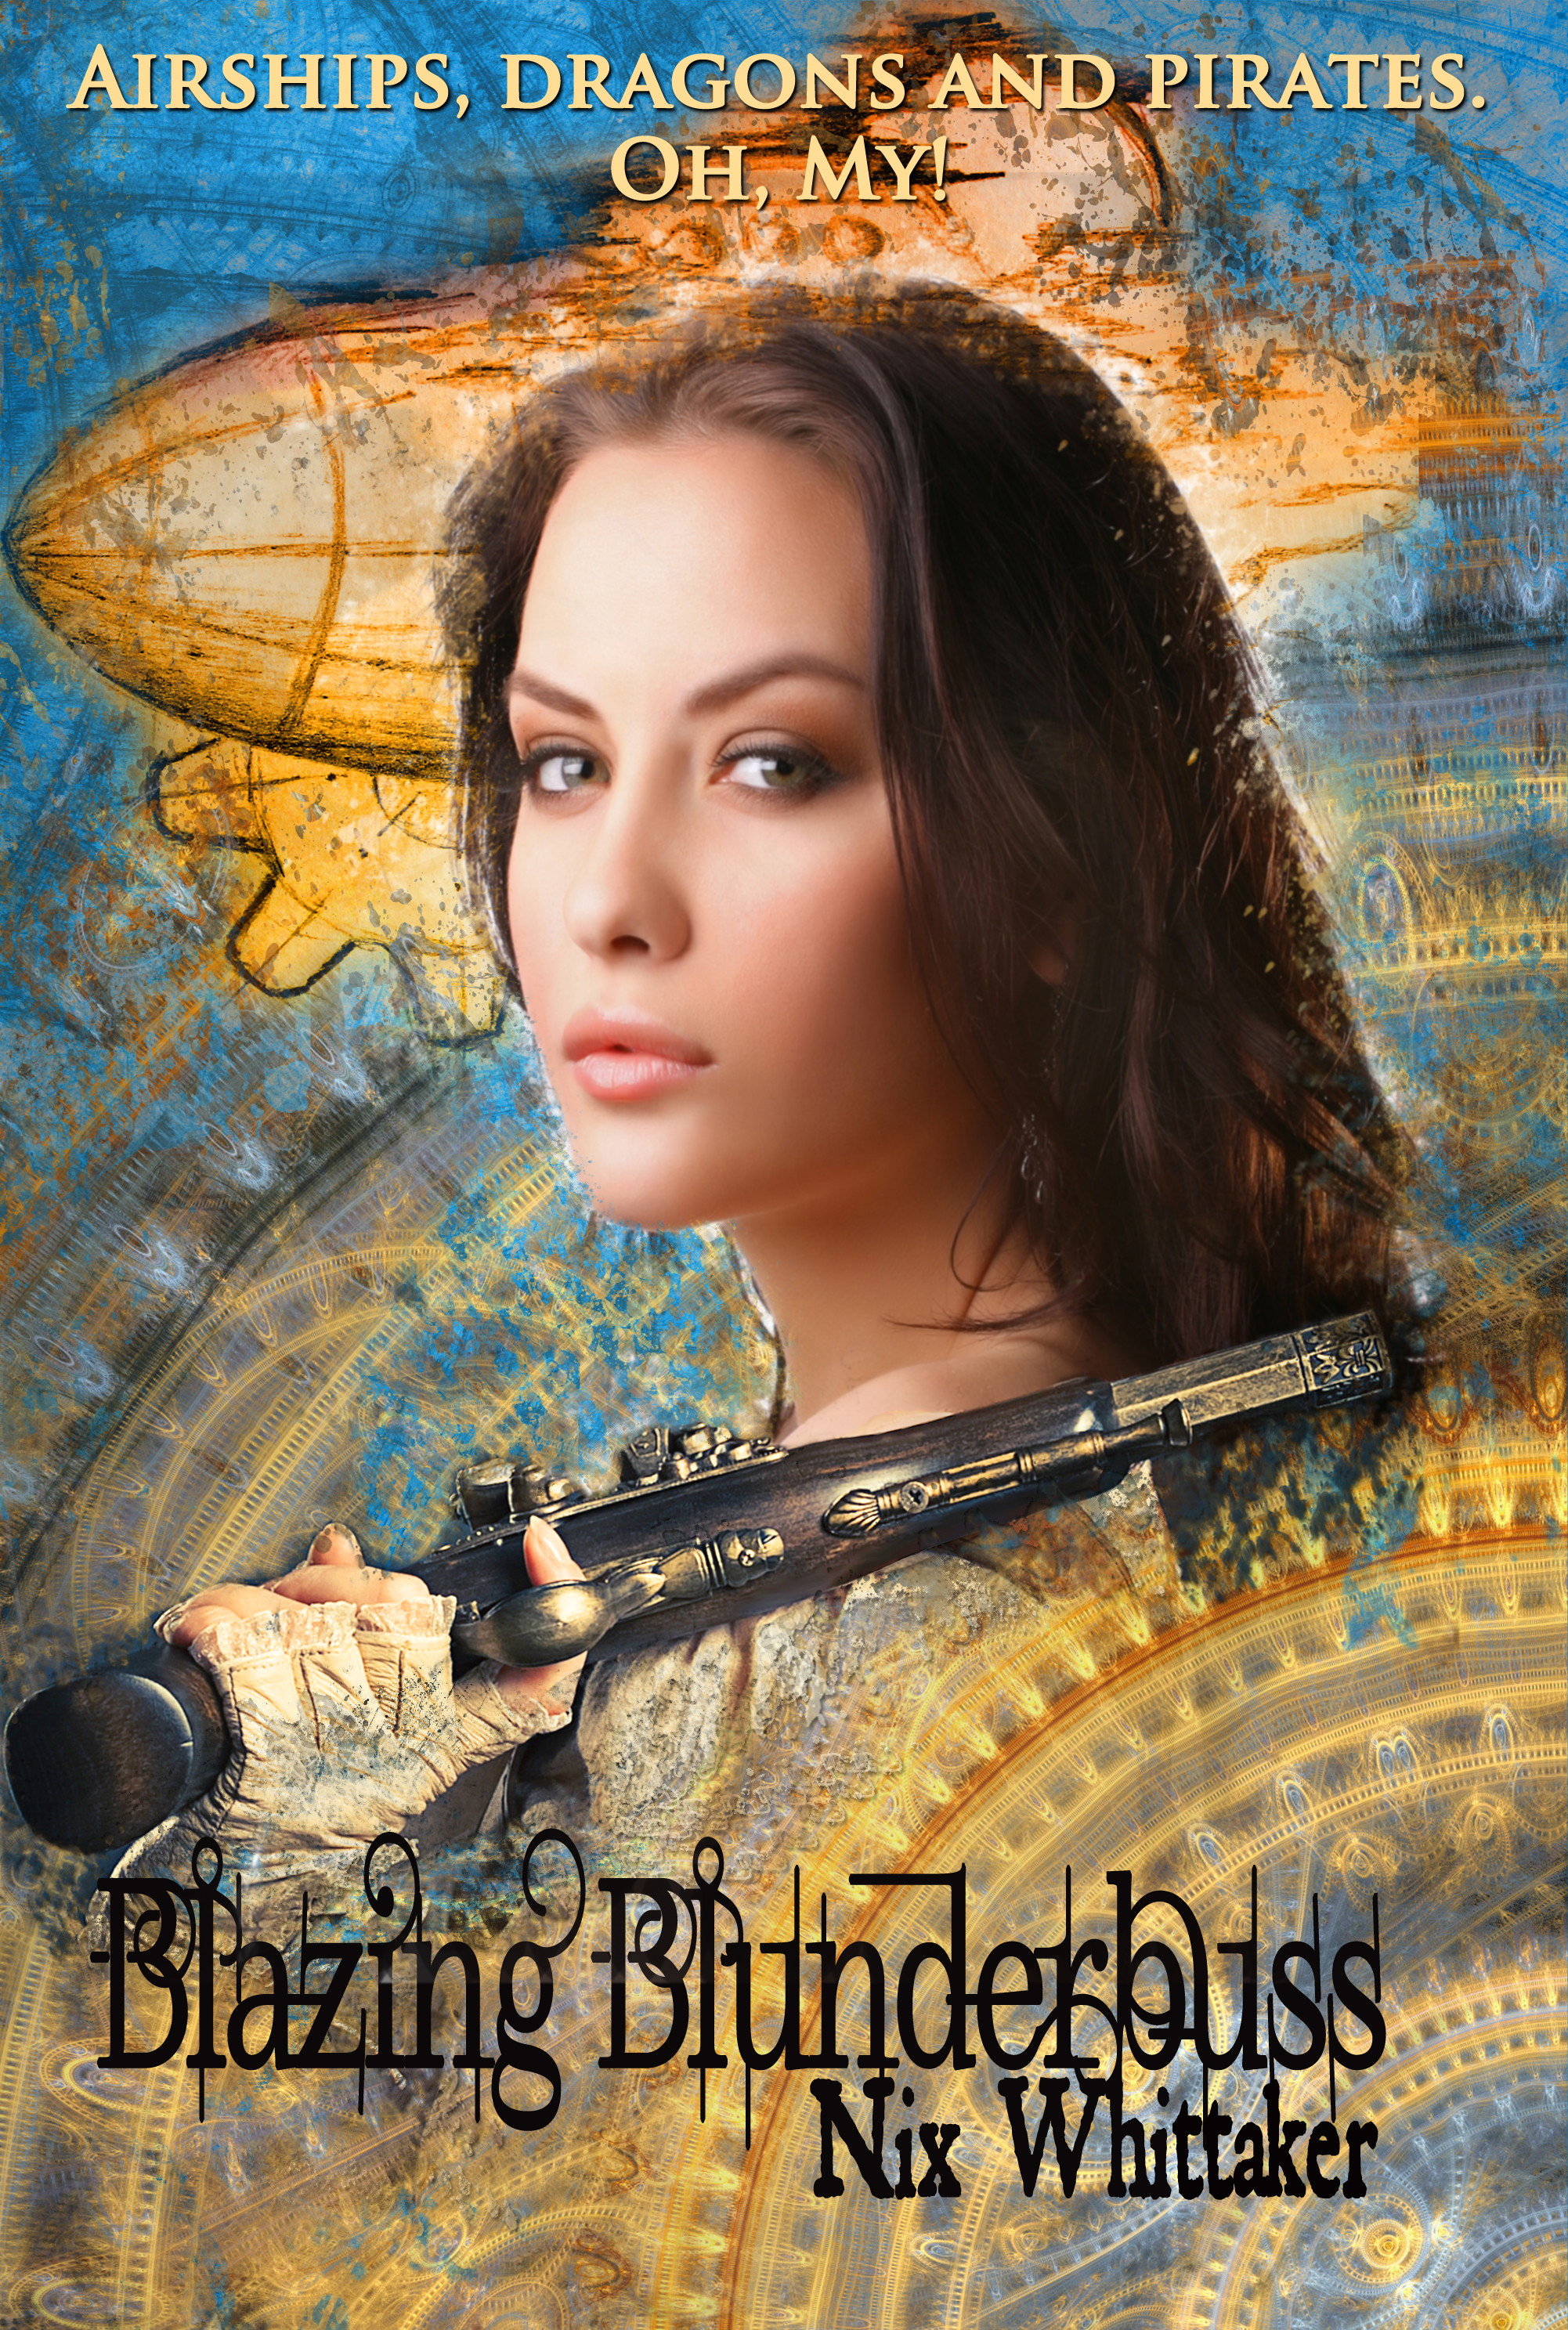 Blazing Blunderbuss by Nix Whittaker